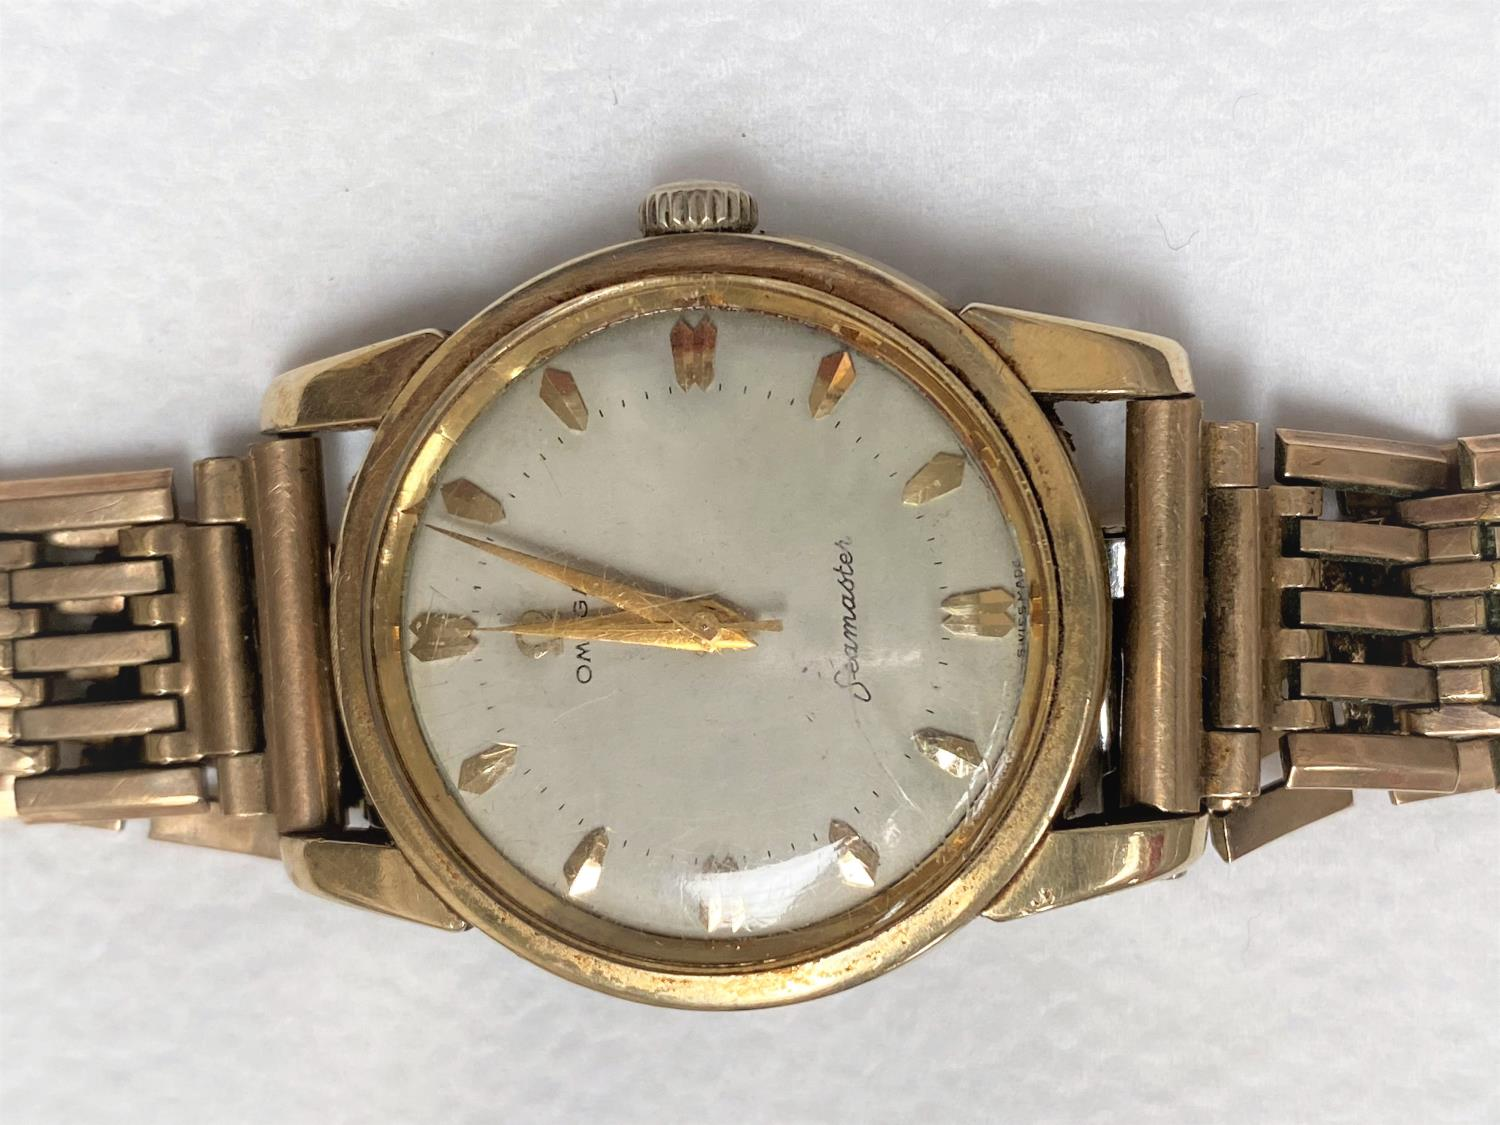 A vintage Omega Seamaster 17 jewel wristwatch with baton numerals and center seconds hand, no